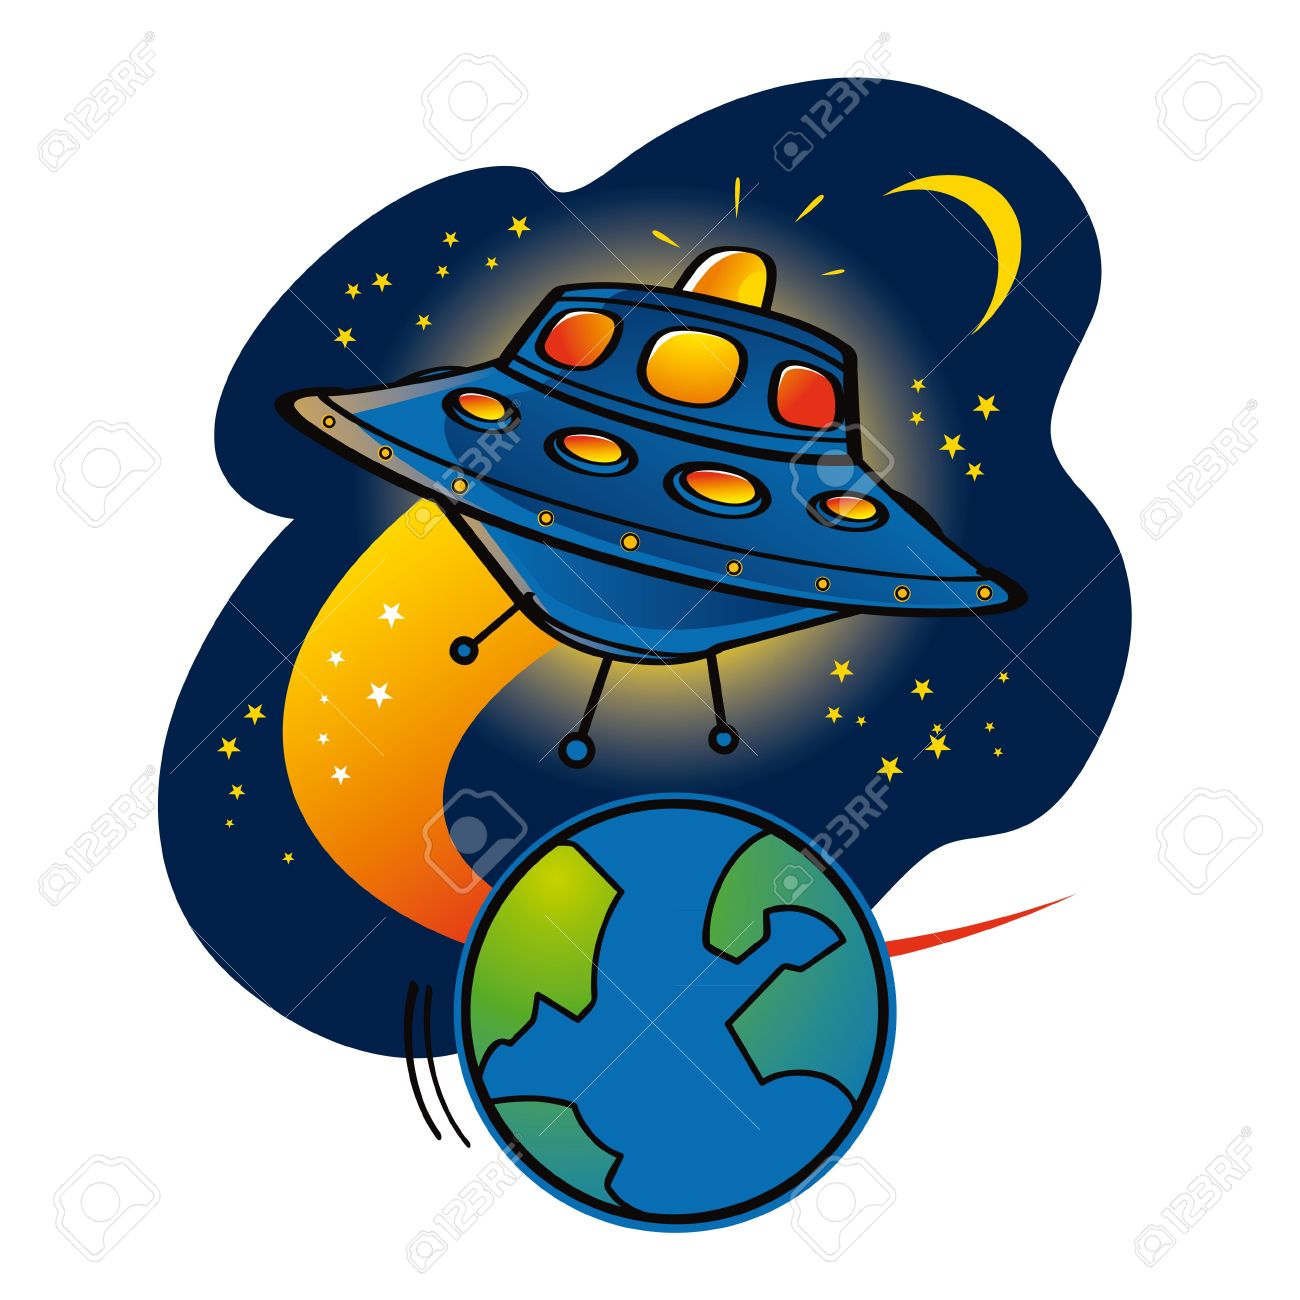 Earth and space science clipart 6 » Clipart Station.